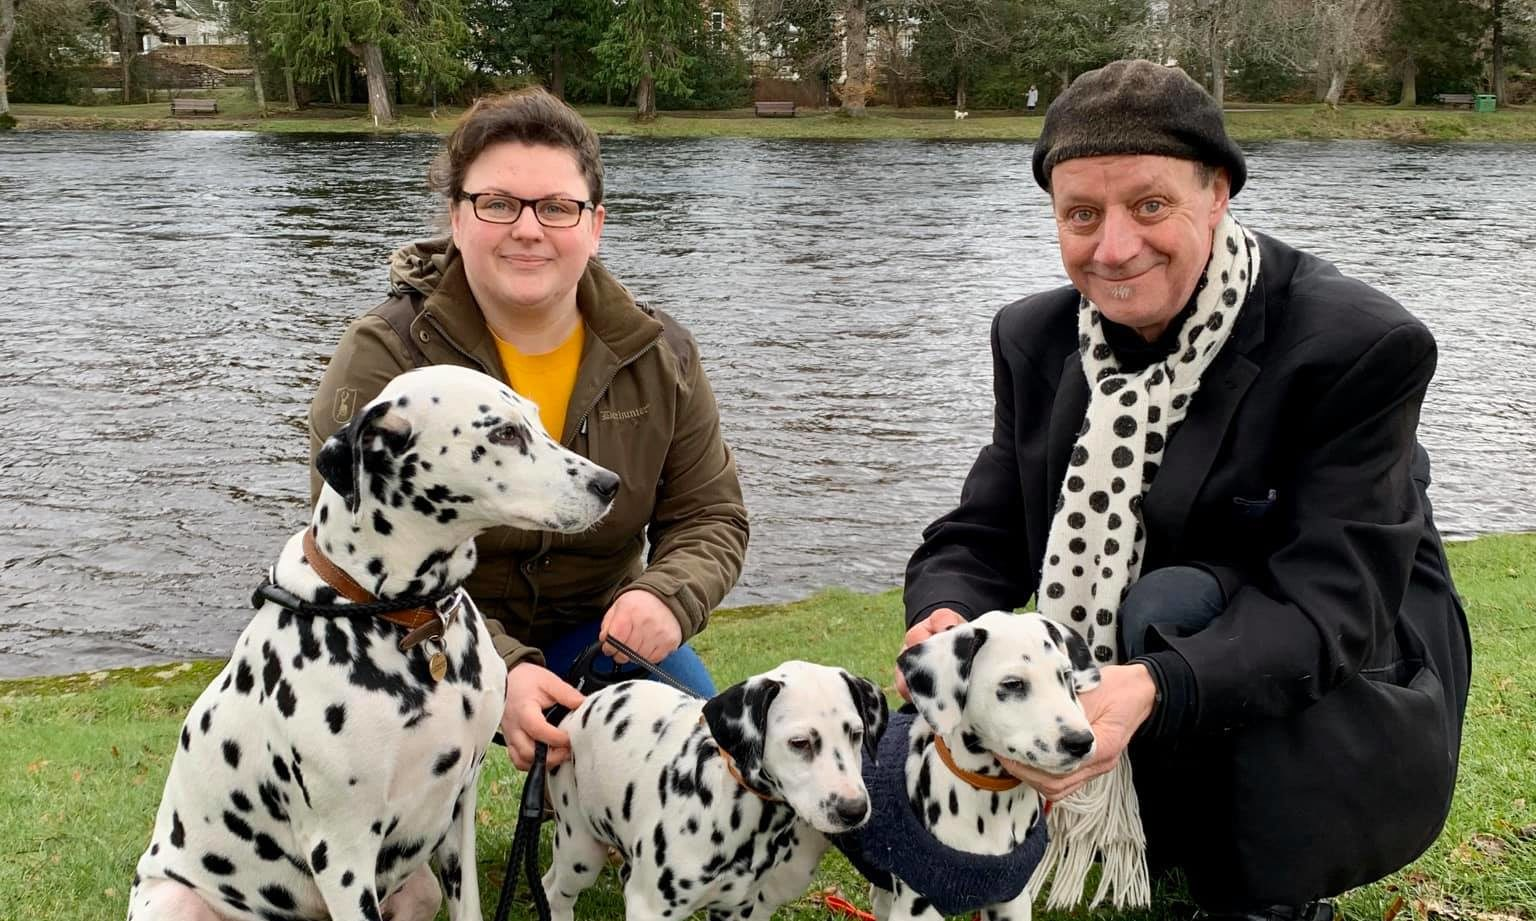 Mhairi Duncan with Fidget and Lottie (Moby's mum and sister) and John with Moby